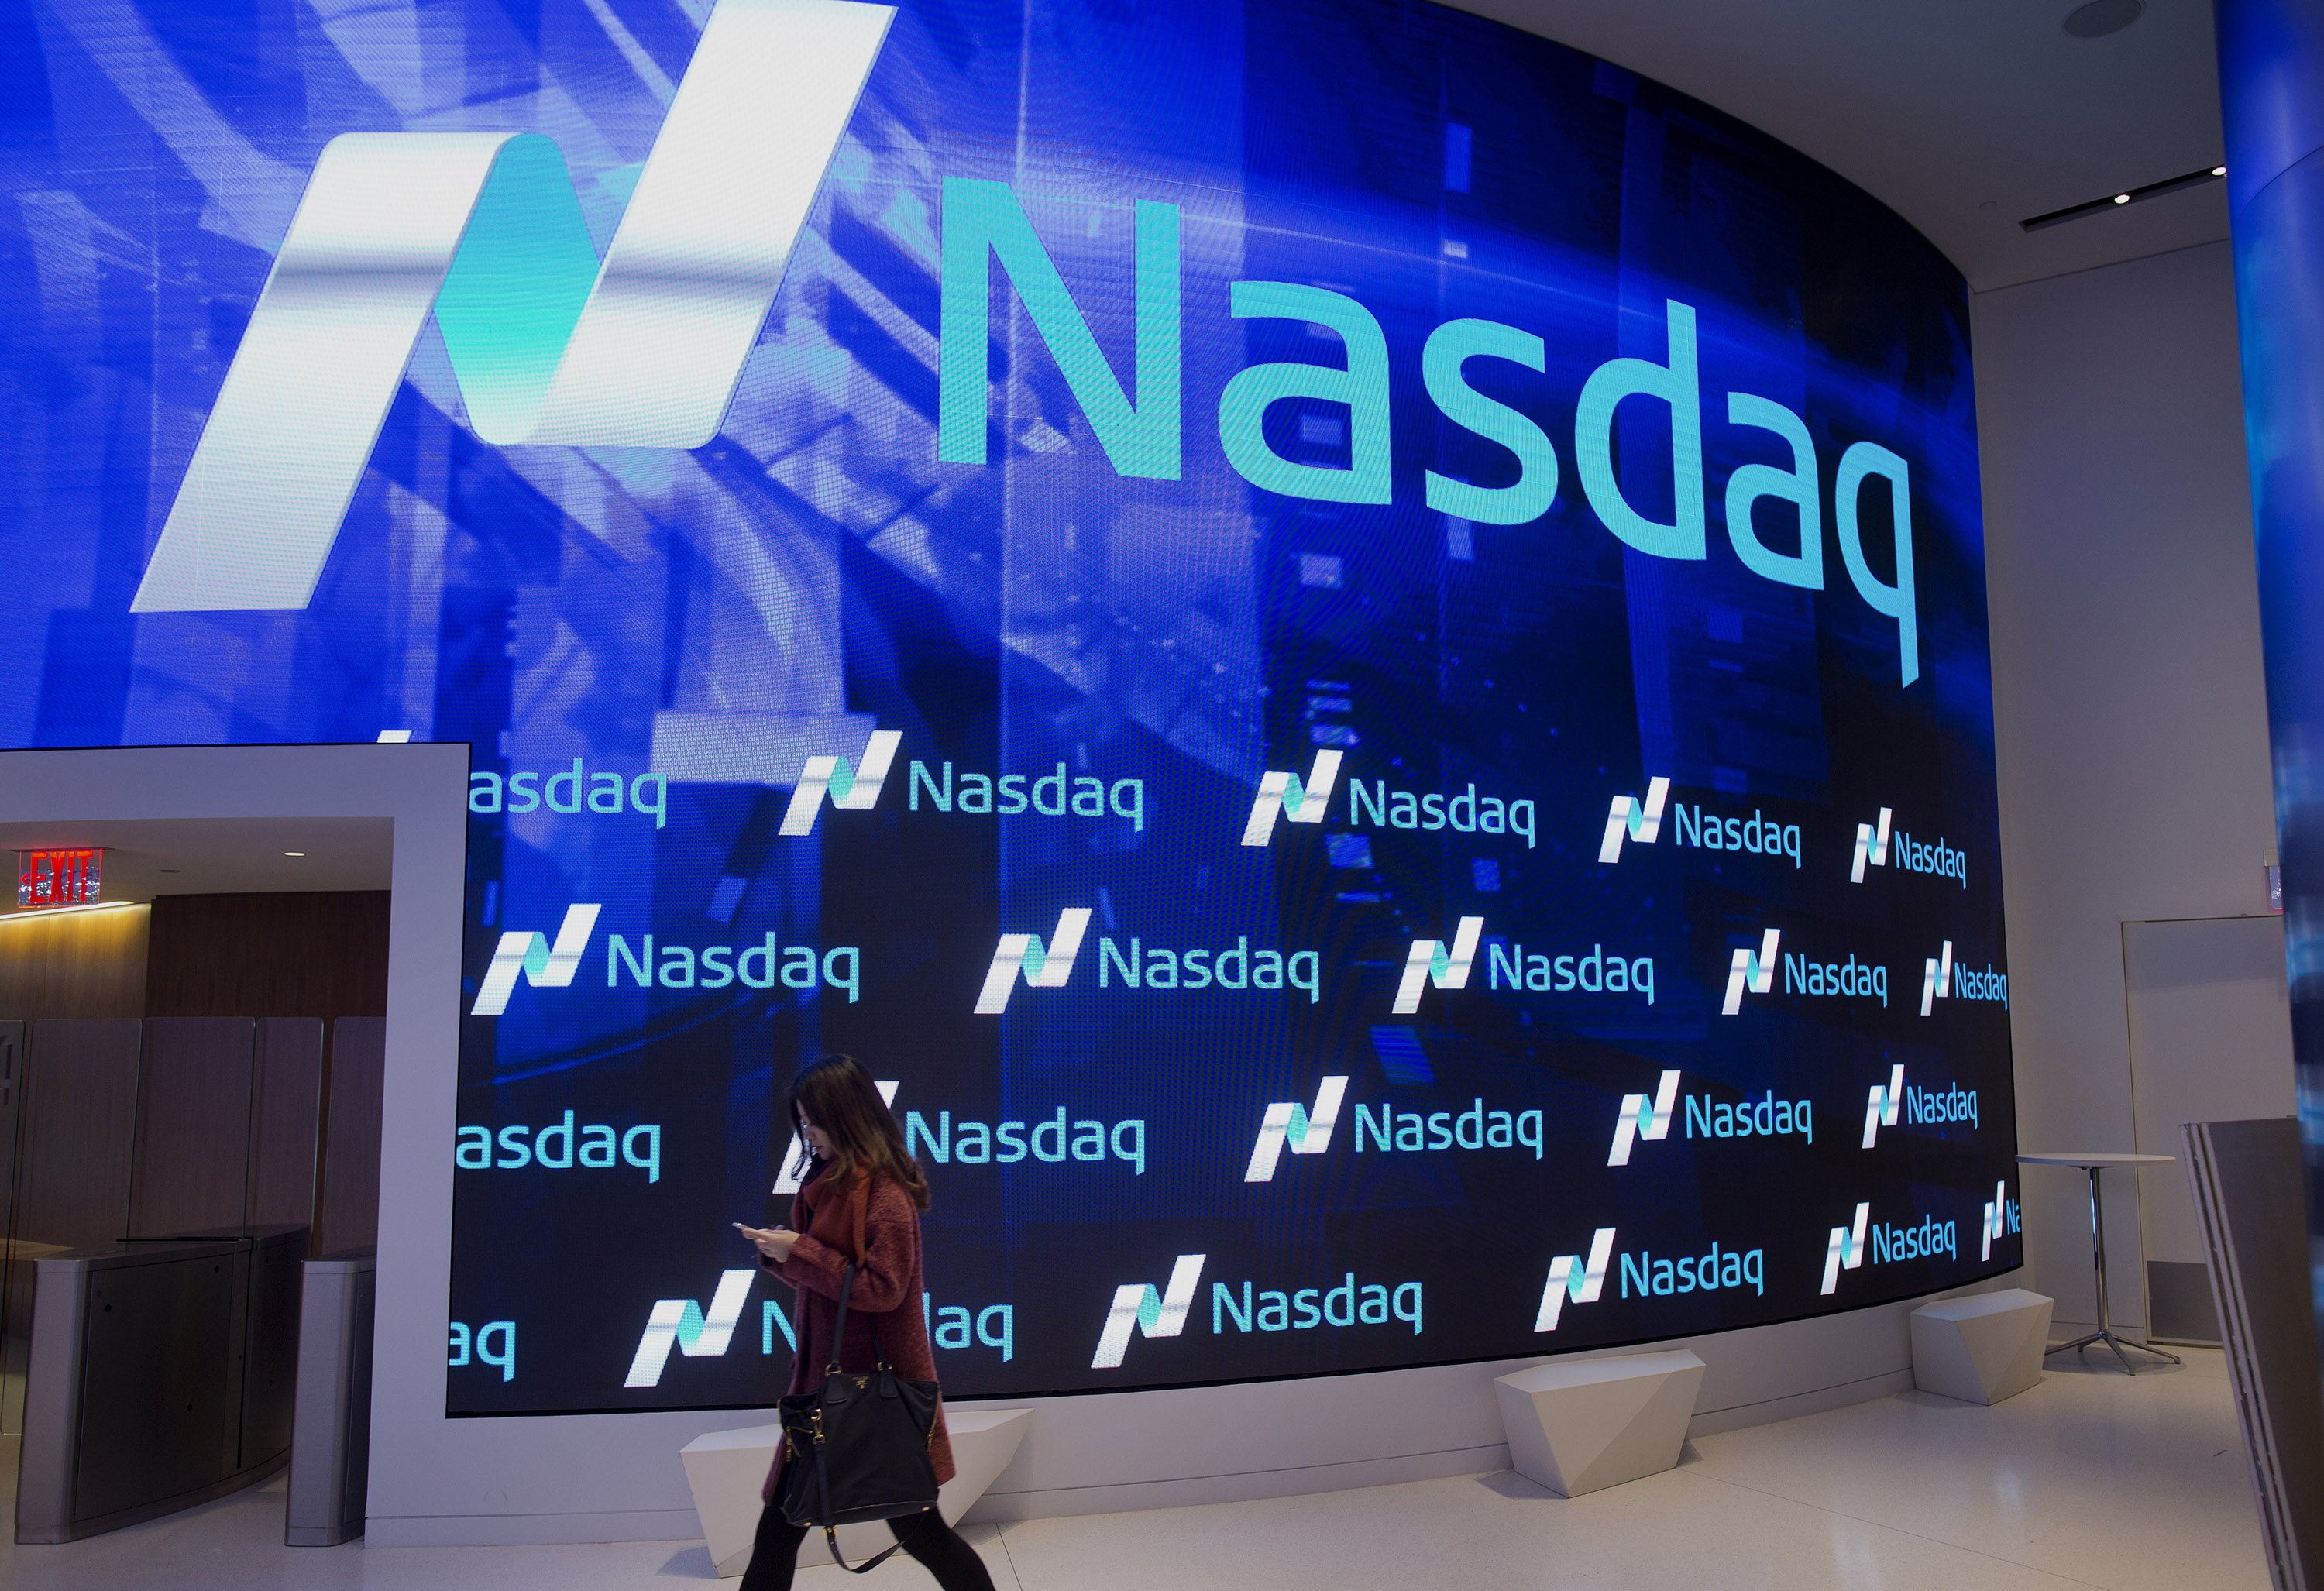 A visitor walks through the new lobby at the Nasdaq stock exchange in Times Square in New York, NY, Friday, December 19, 2014.Photograph: Victor J. Blue